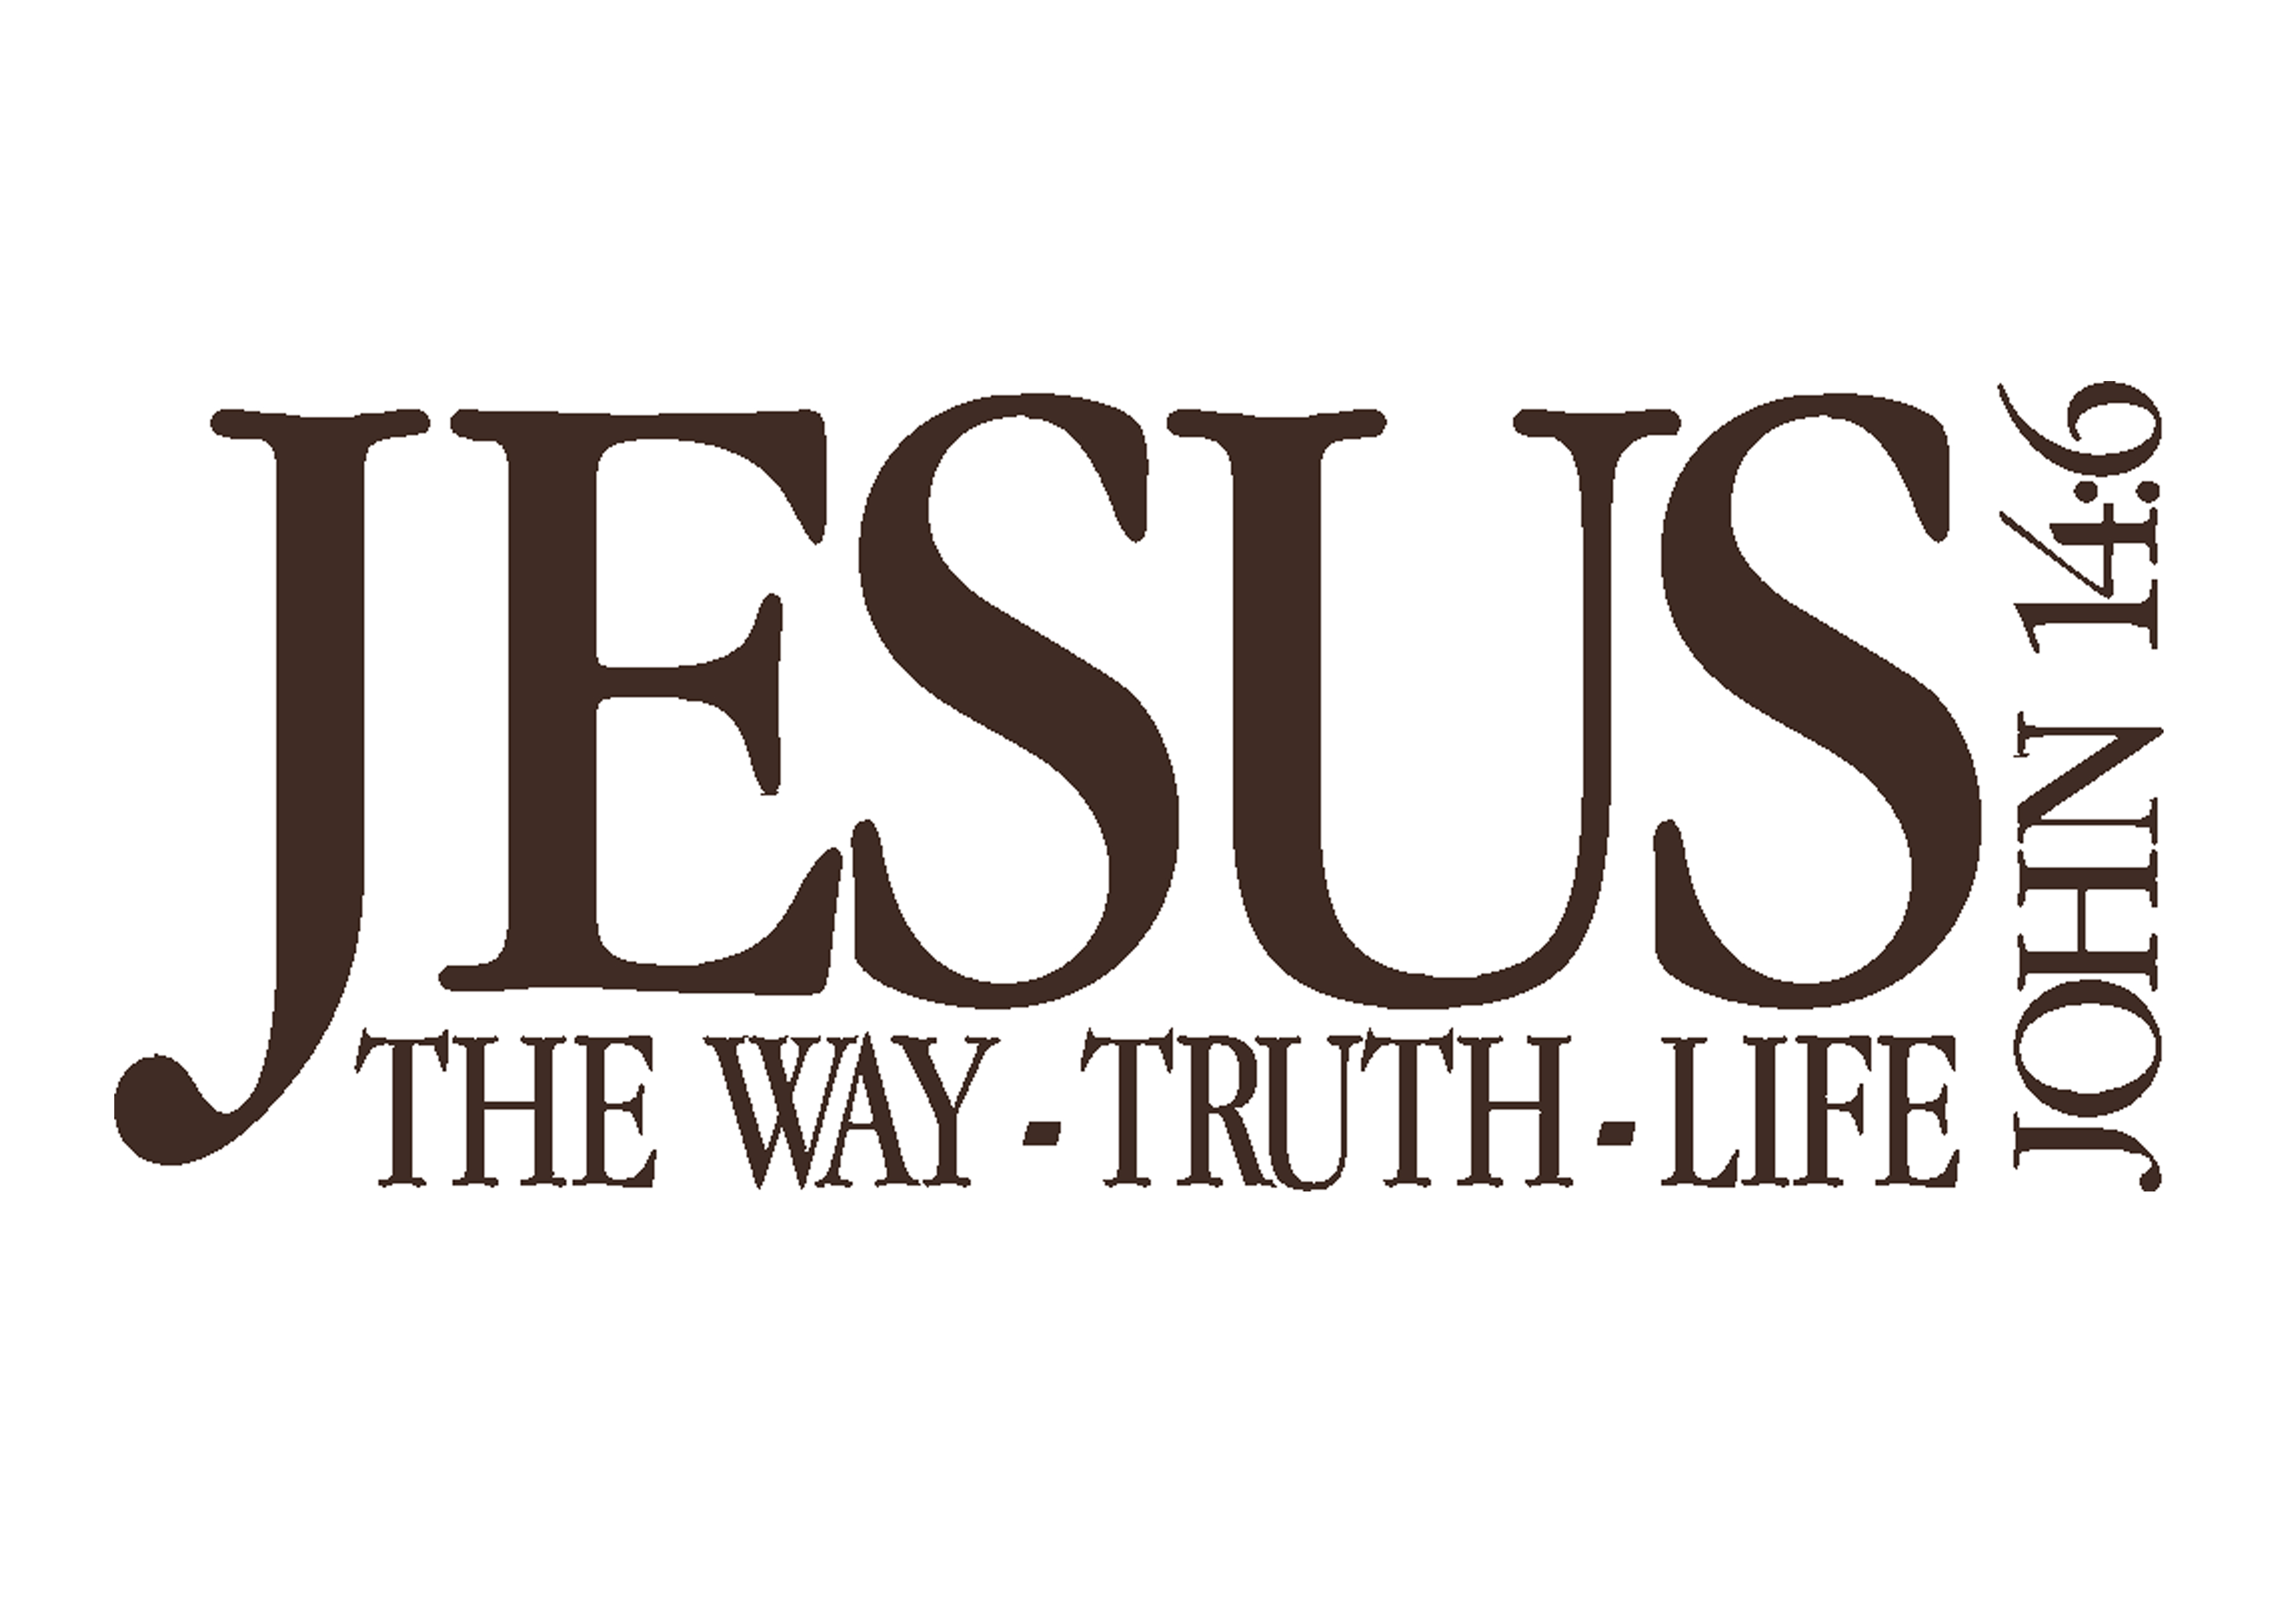 i am the way and the truth and the life theological study essay Revealing himself as the incarnate son of god, jesus continues the self-revelation of god in his corollary statements: i am the way, the truth, and the life (john 14:6) i am the resurrection and the life (john 11:25.